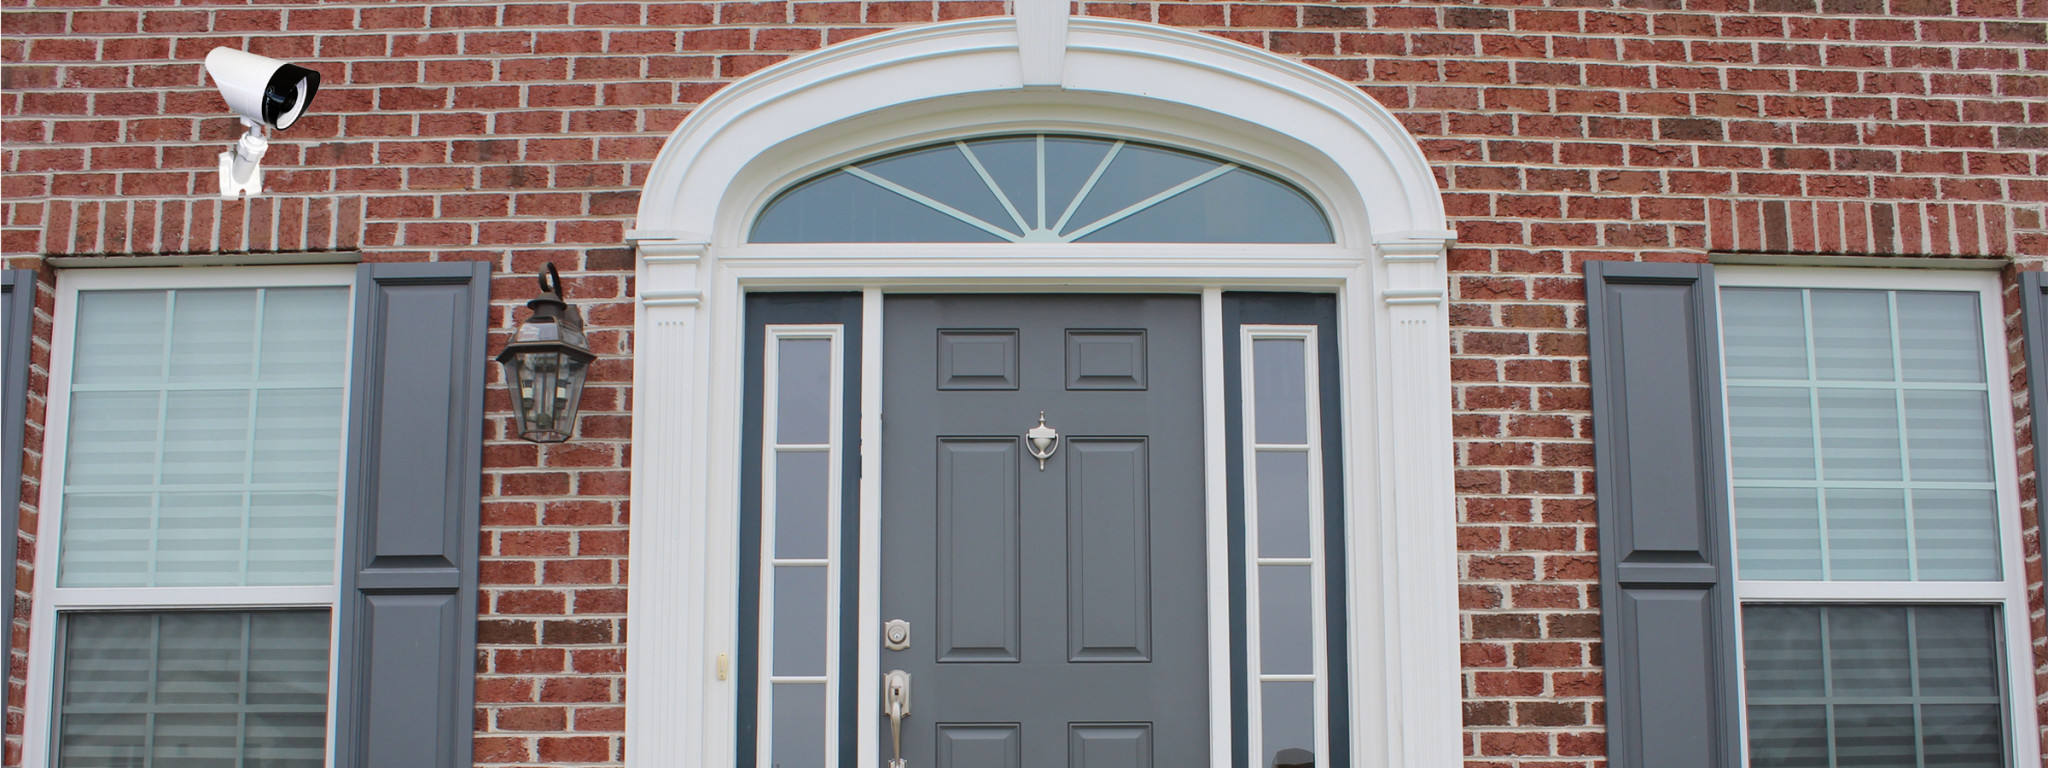 Front Door Surveillance Camera Pictures to Pin on